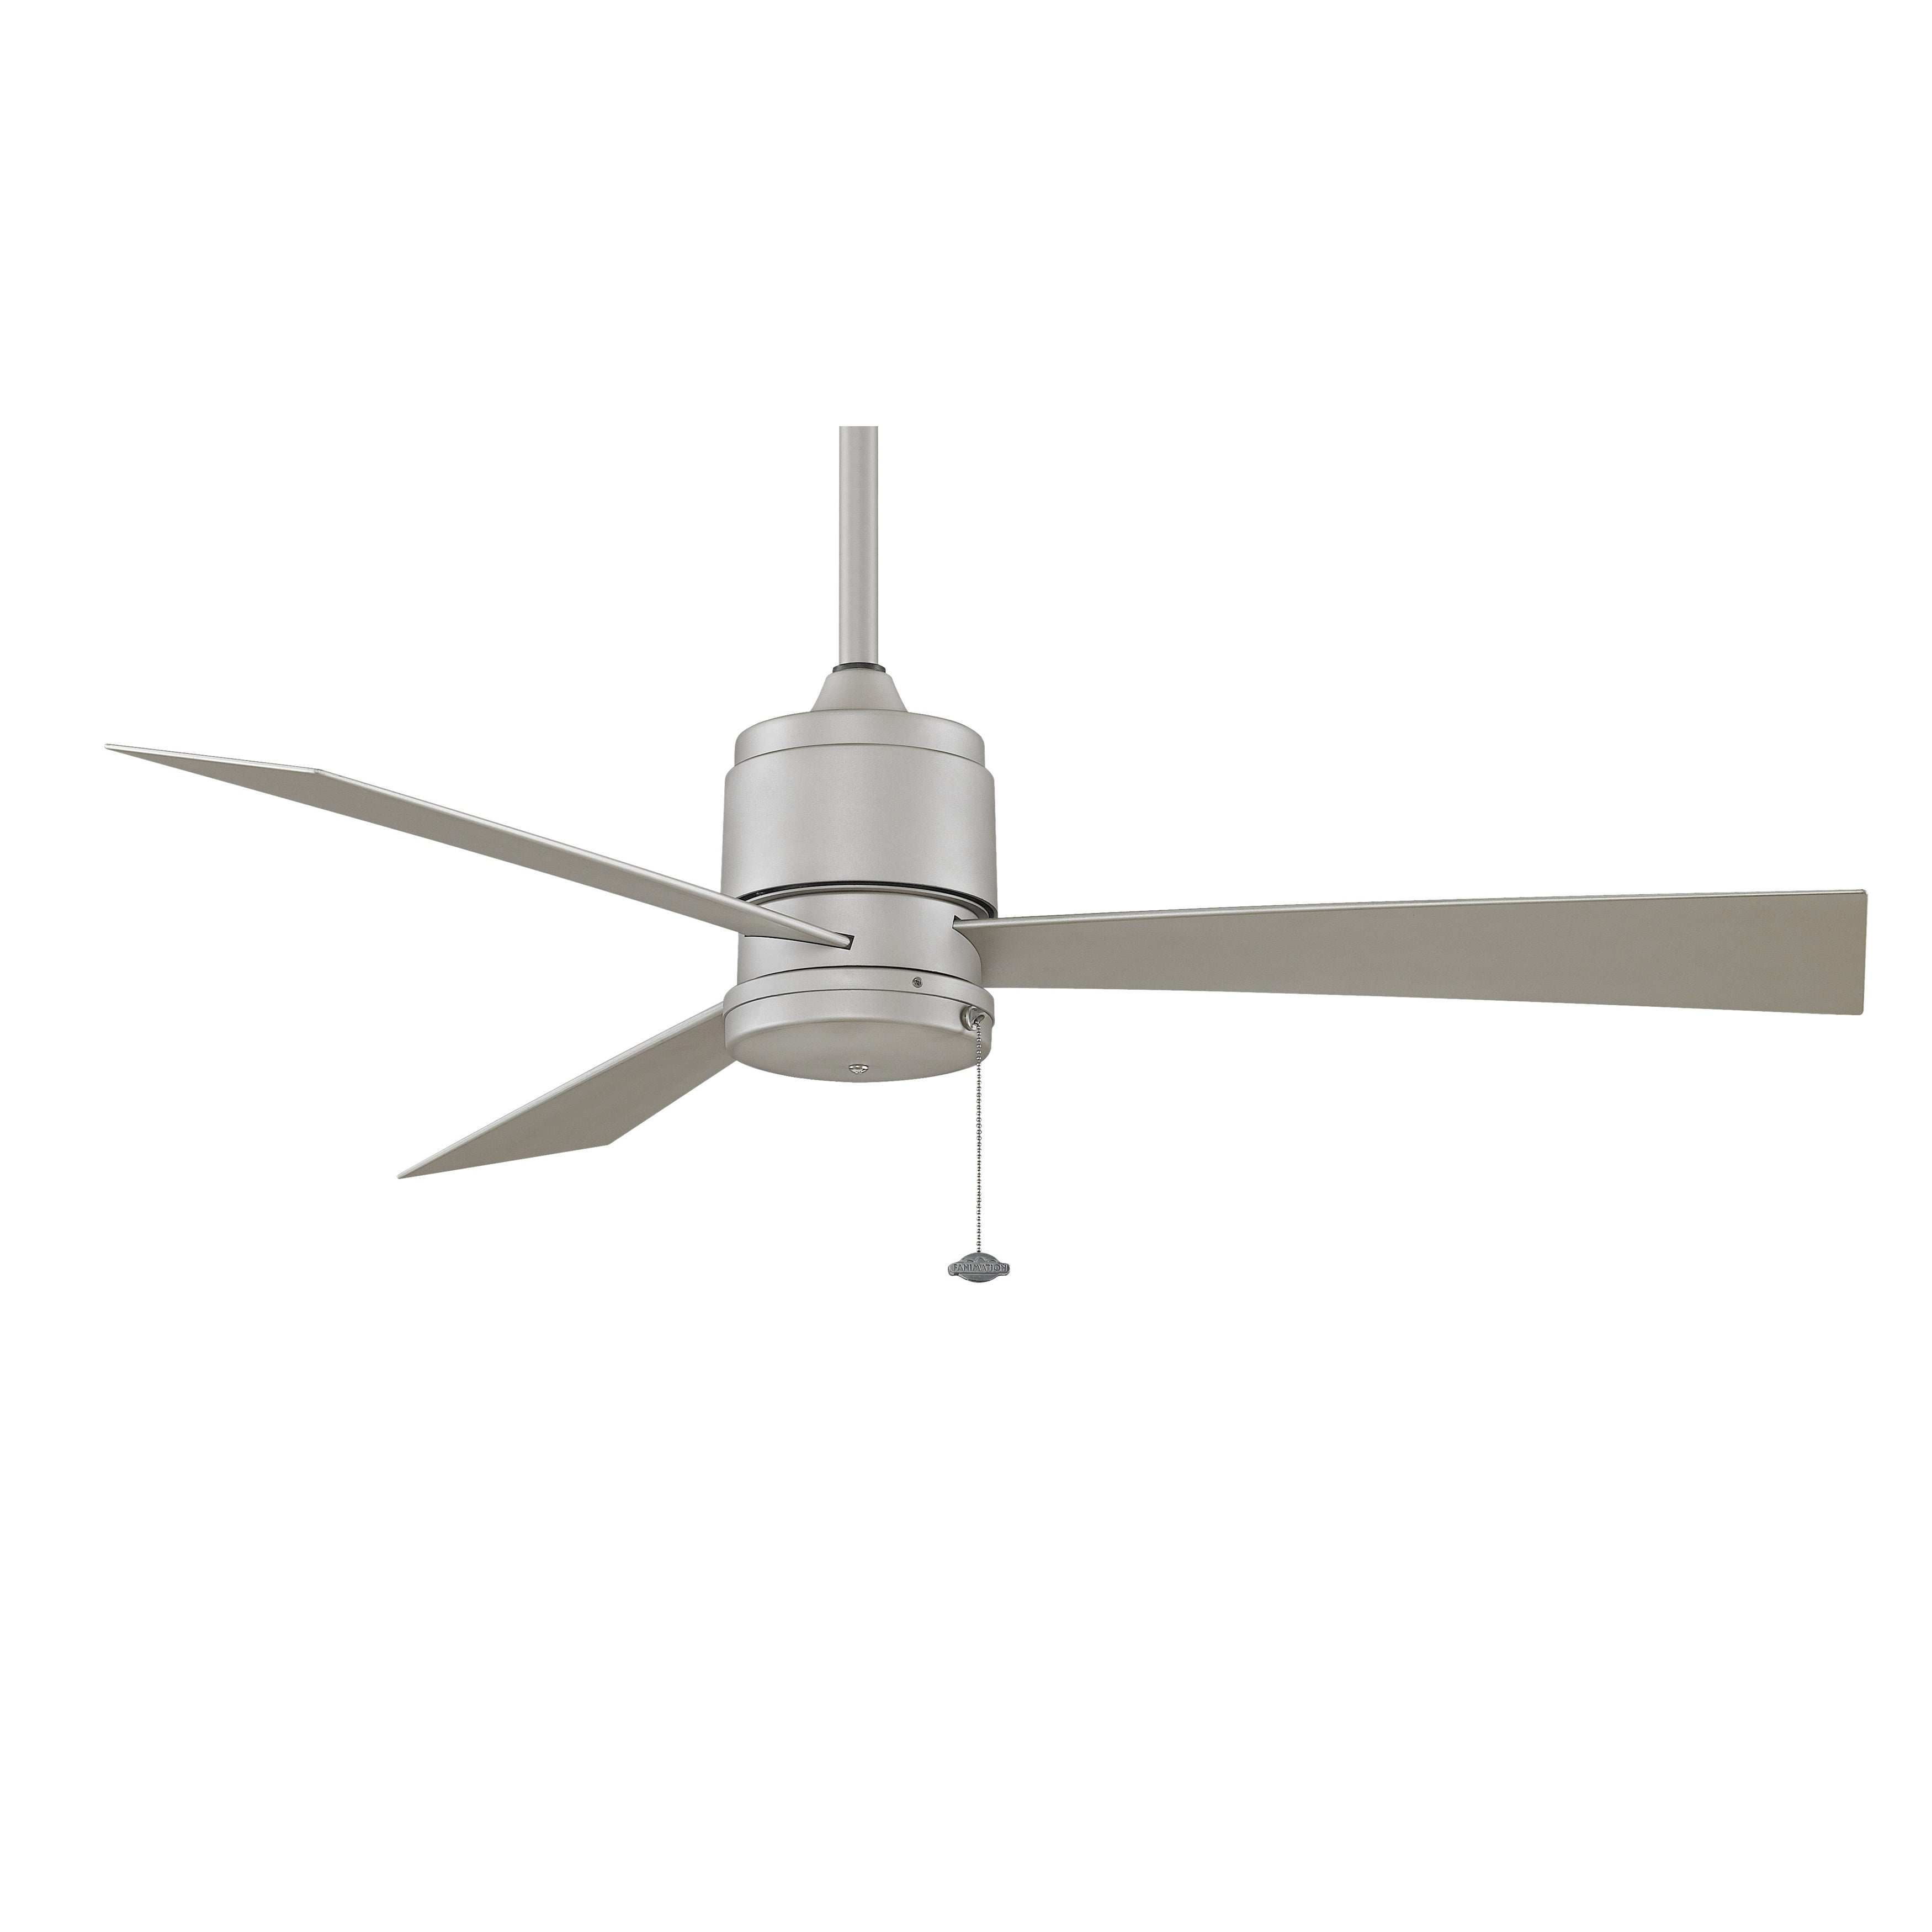 Fanimation Zonix 54 inch Wet Location Energy Star Rated Ceiling